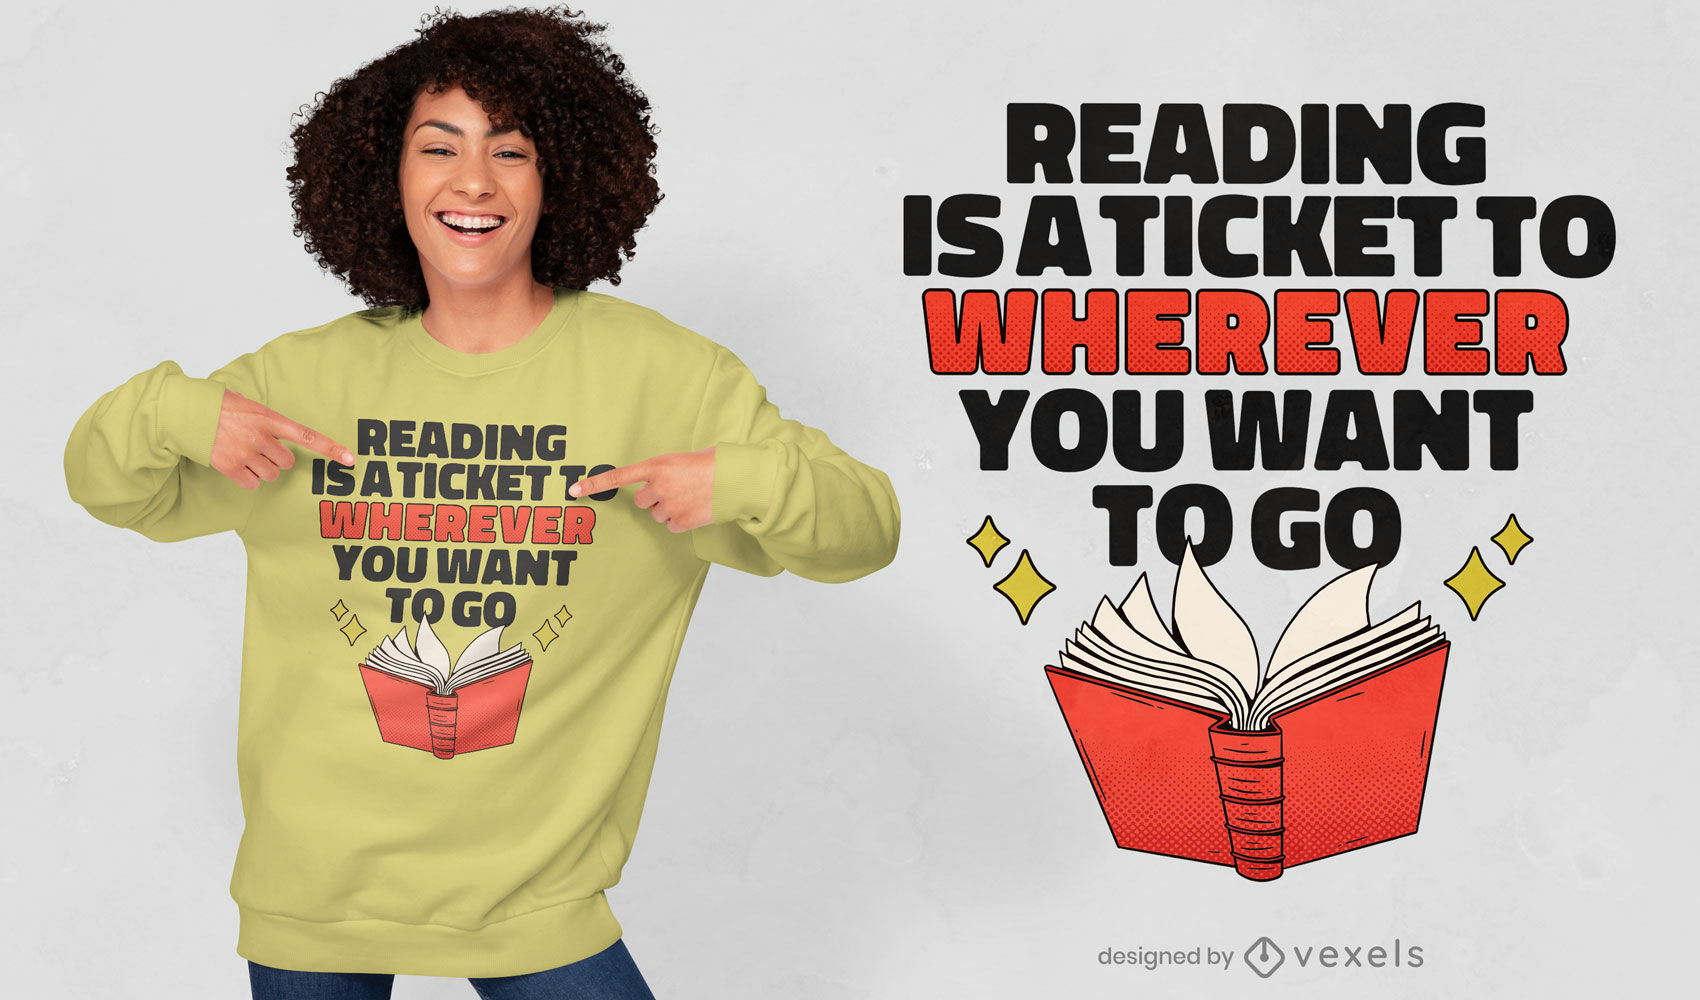 Reading hobby book quote t-shirt design